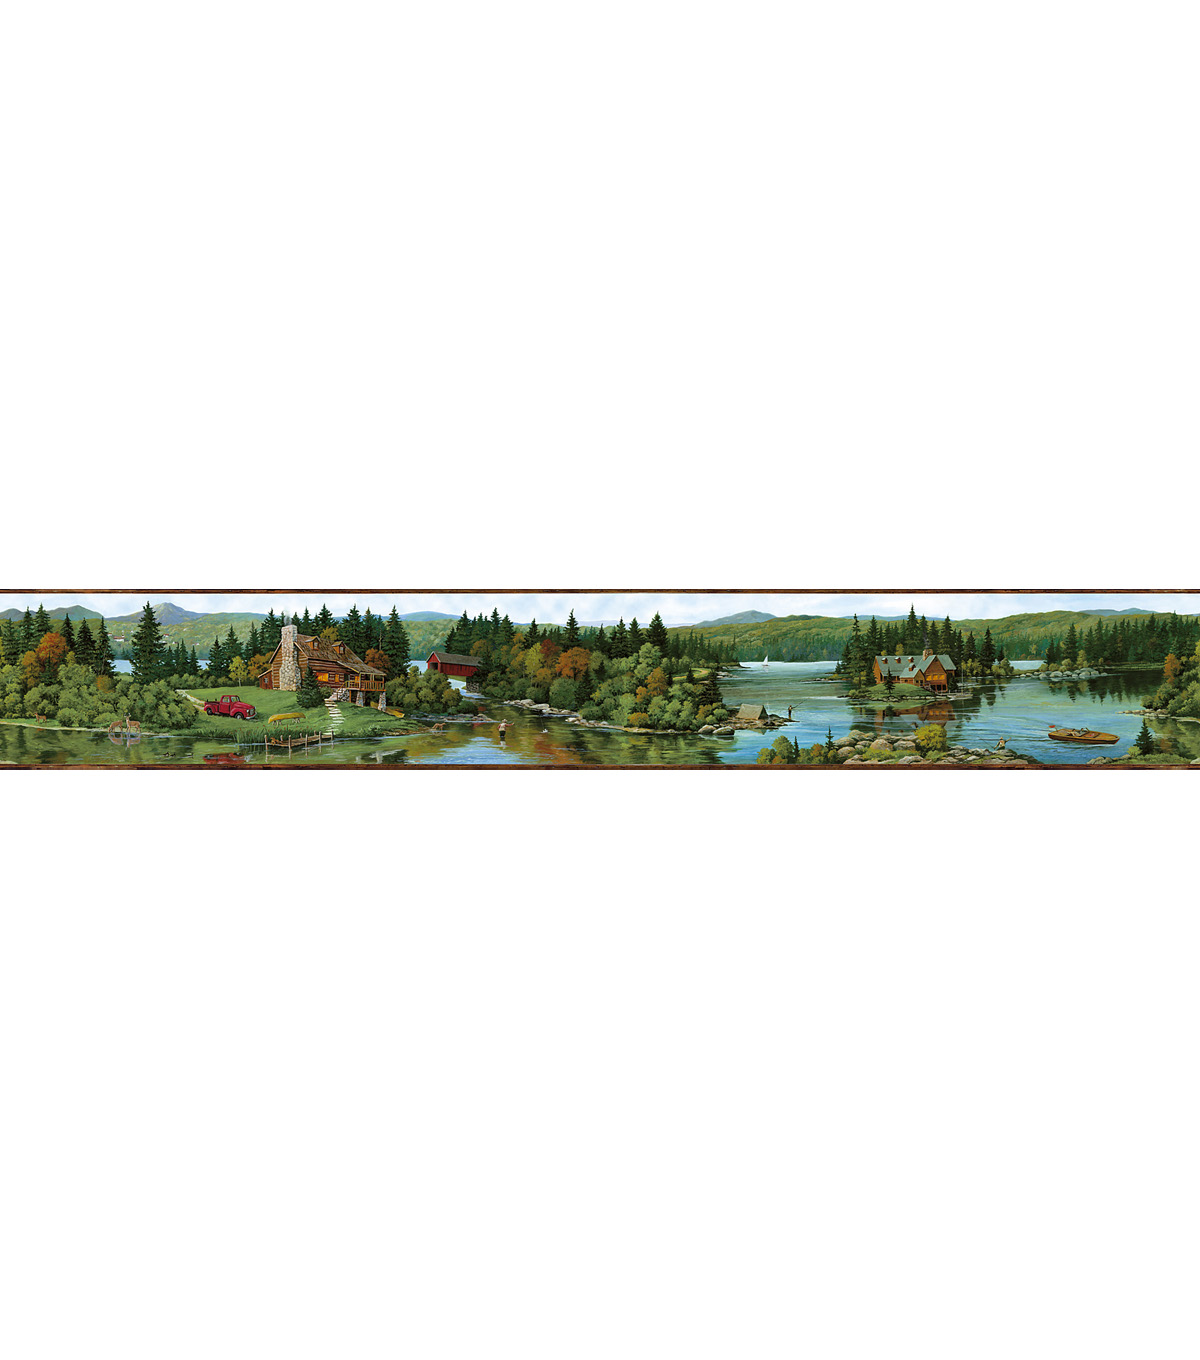 Cabin Wallpaper Border SampleLog Lake Brown Lakeside Cabin Wallpaper 1200x1360